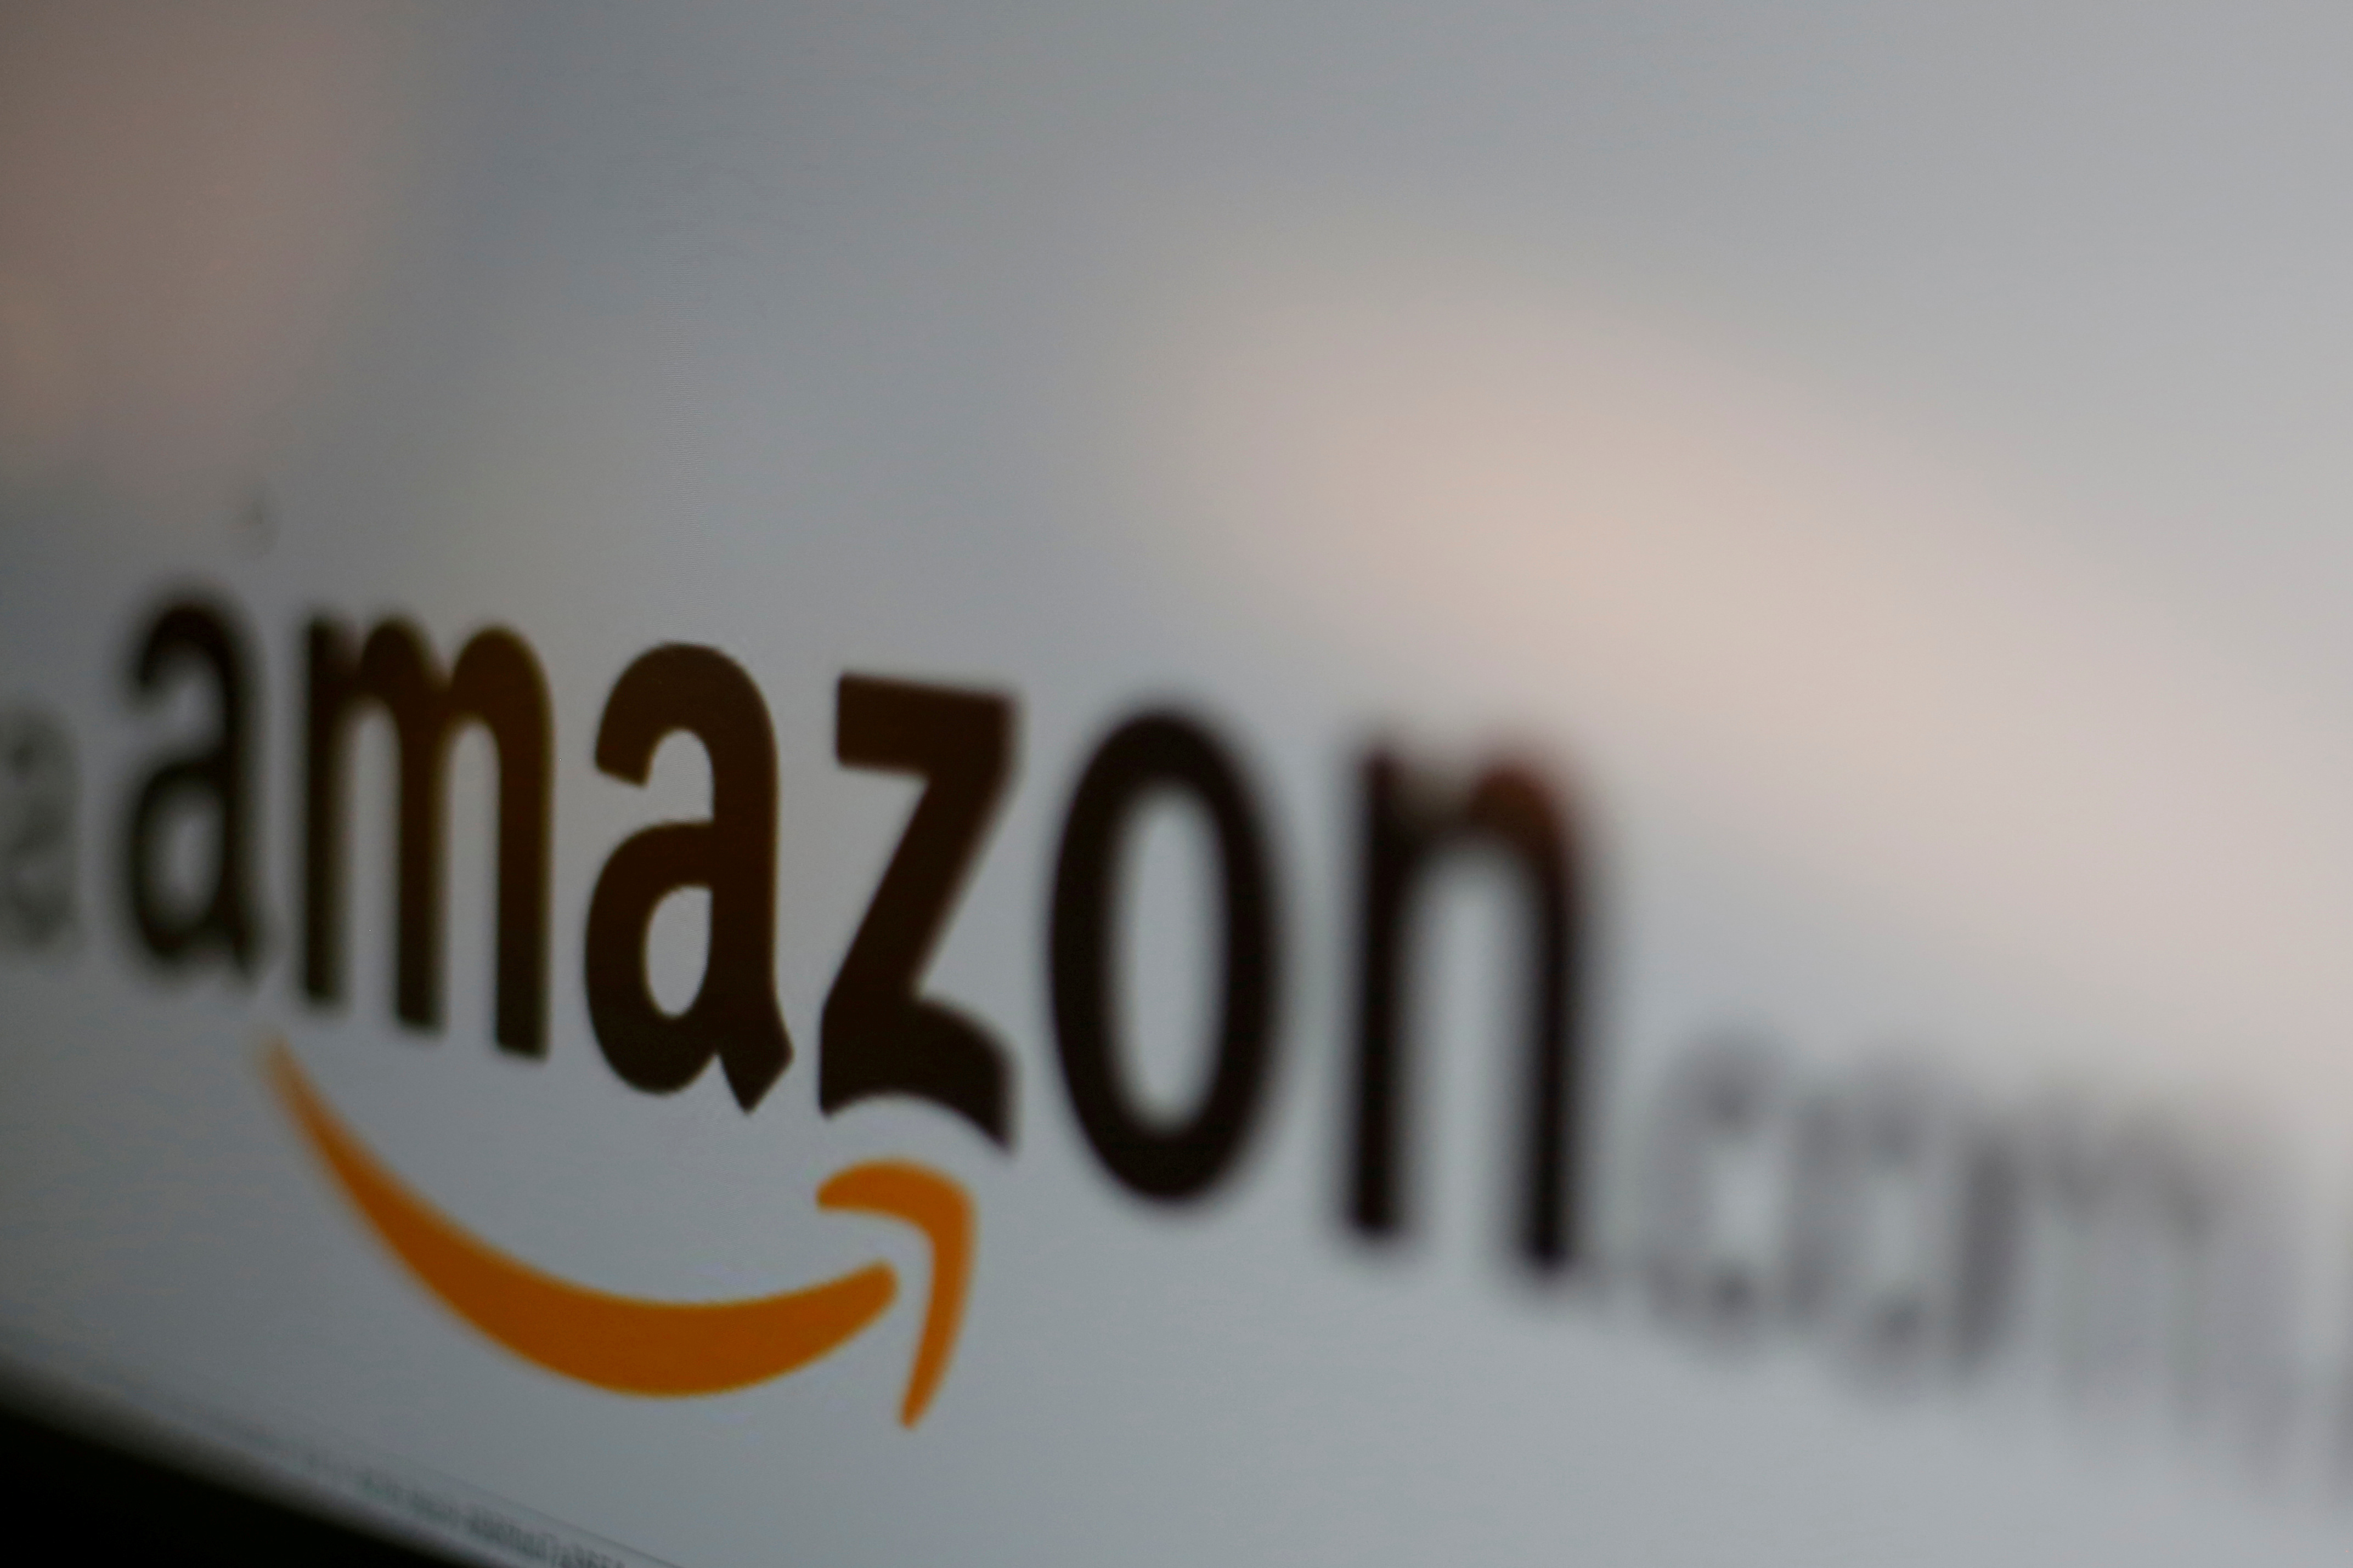 The logo of the web service Amazon is pictured in this June 8, 2017 illustration photo. REUTERS/Carlos Jasso/Illustration